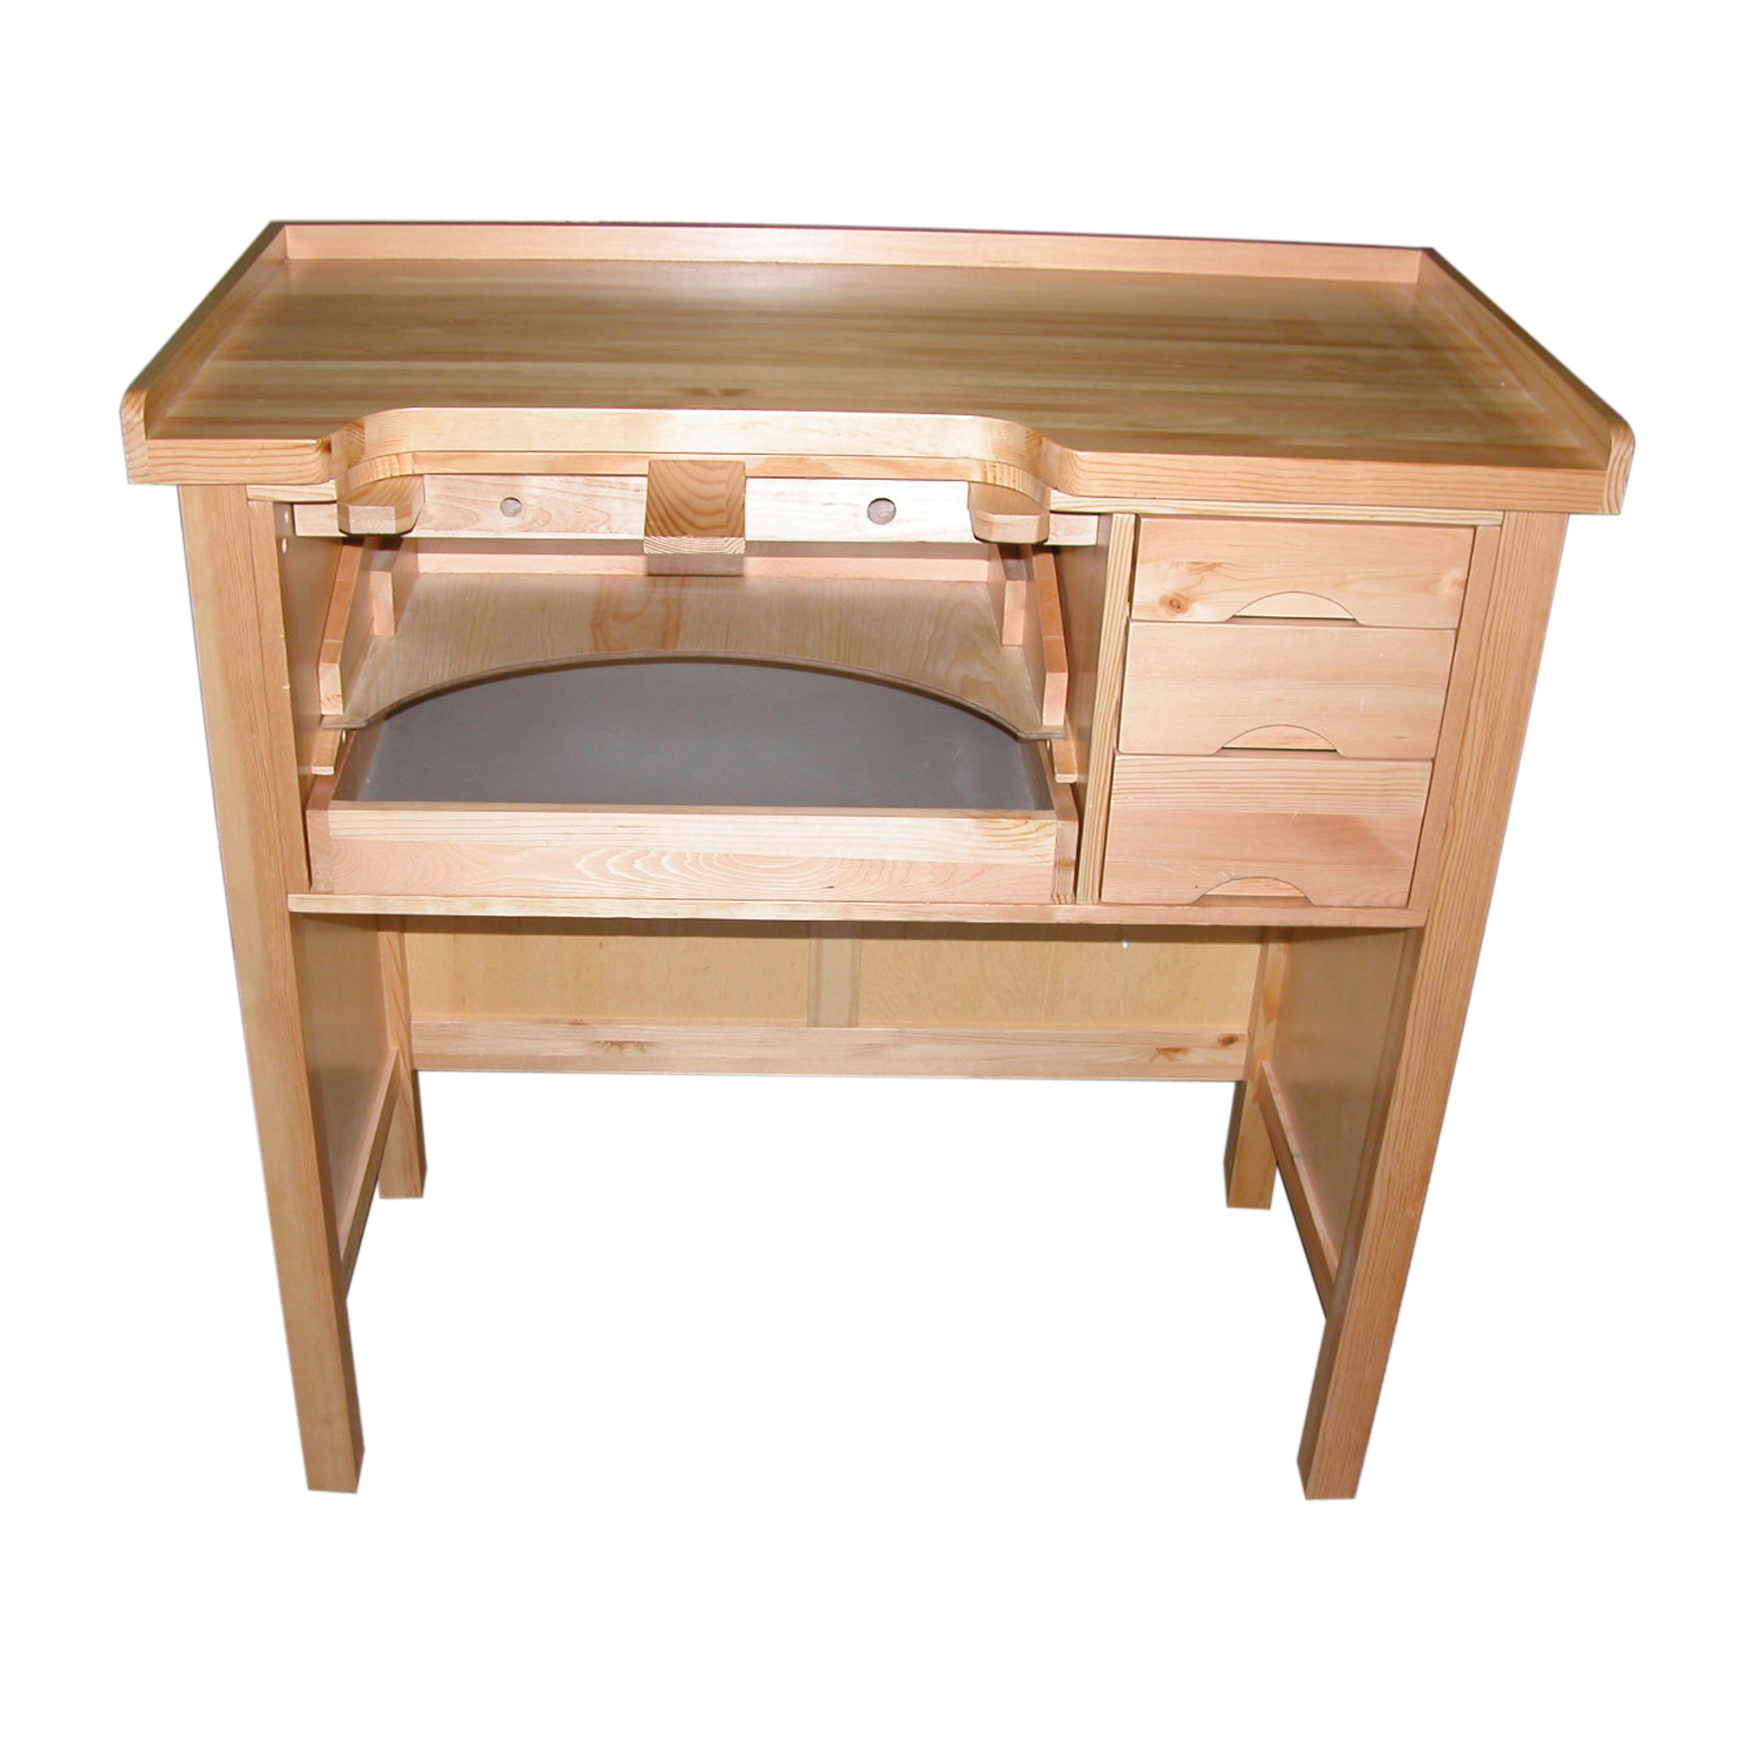 Berco Jewelry Browse Jewelers Benches